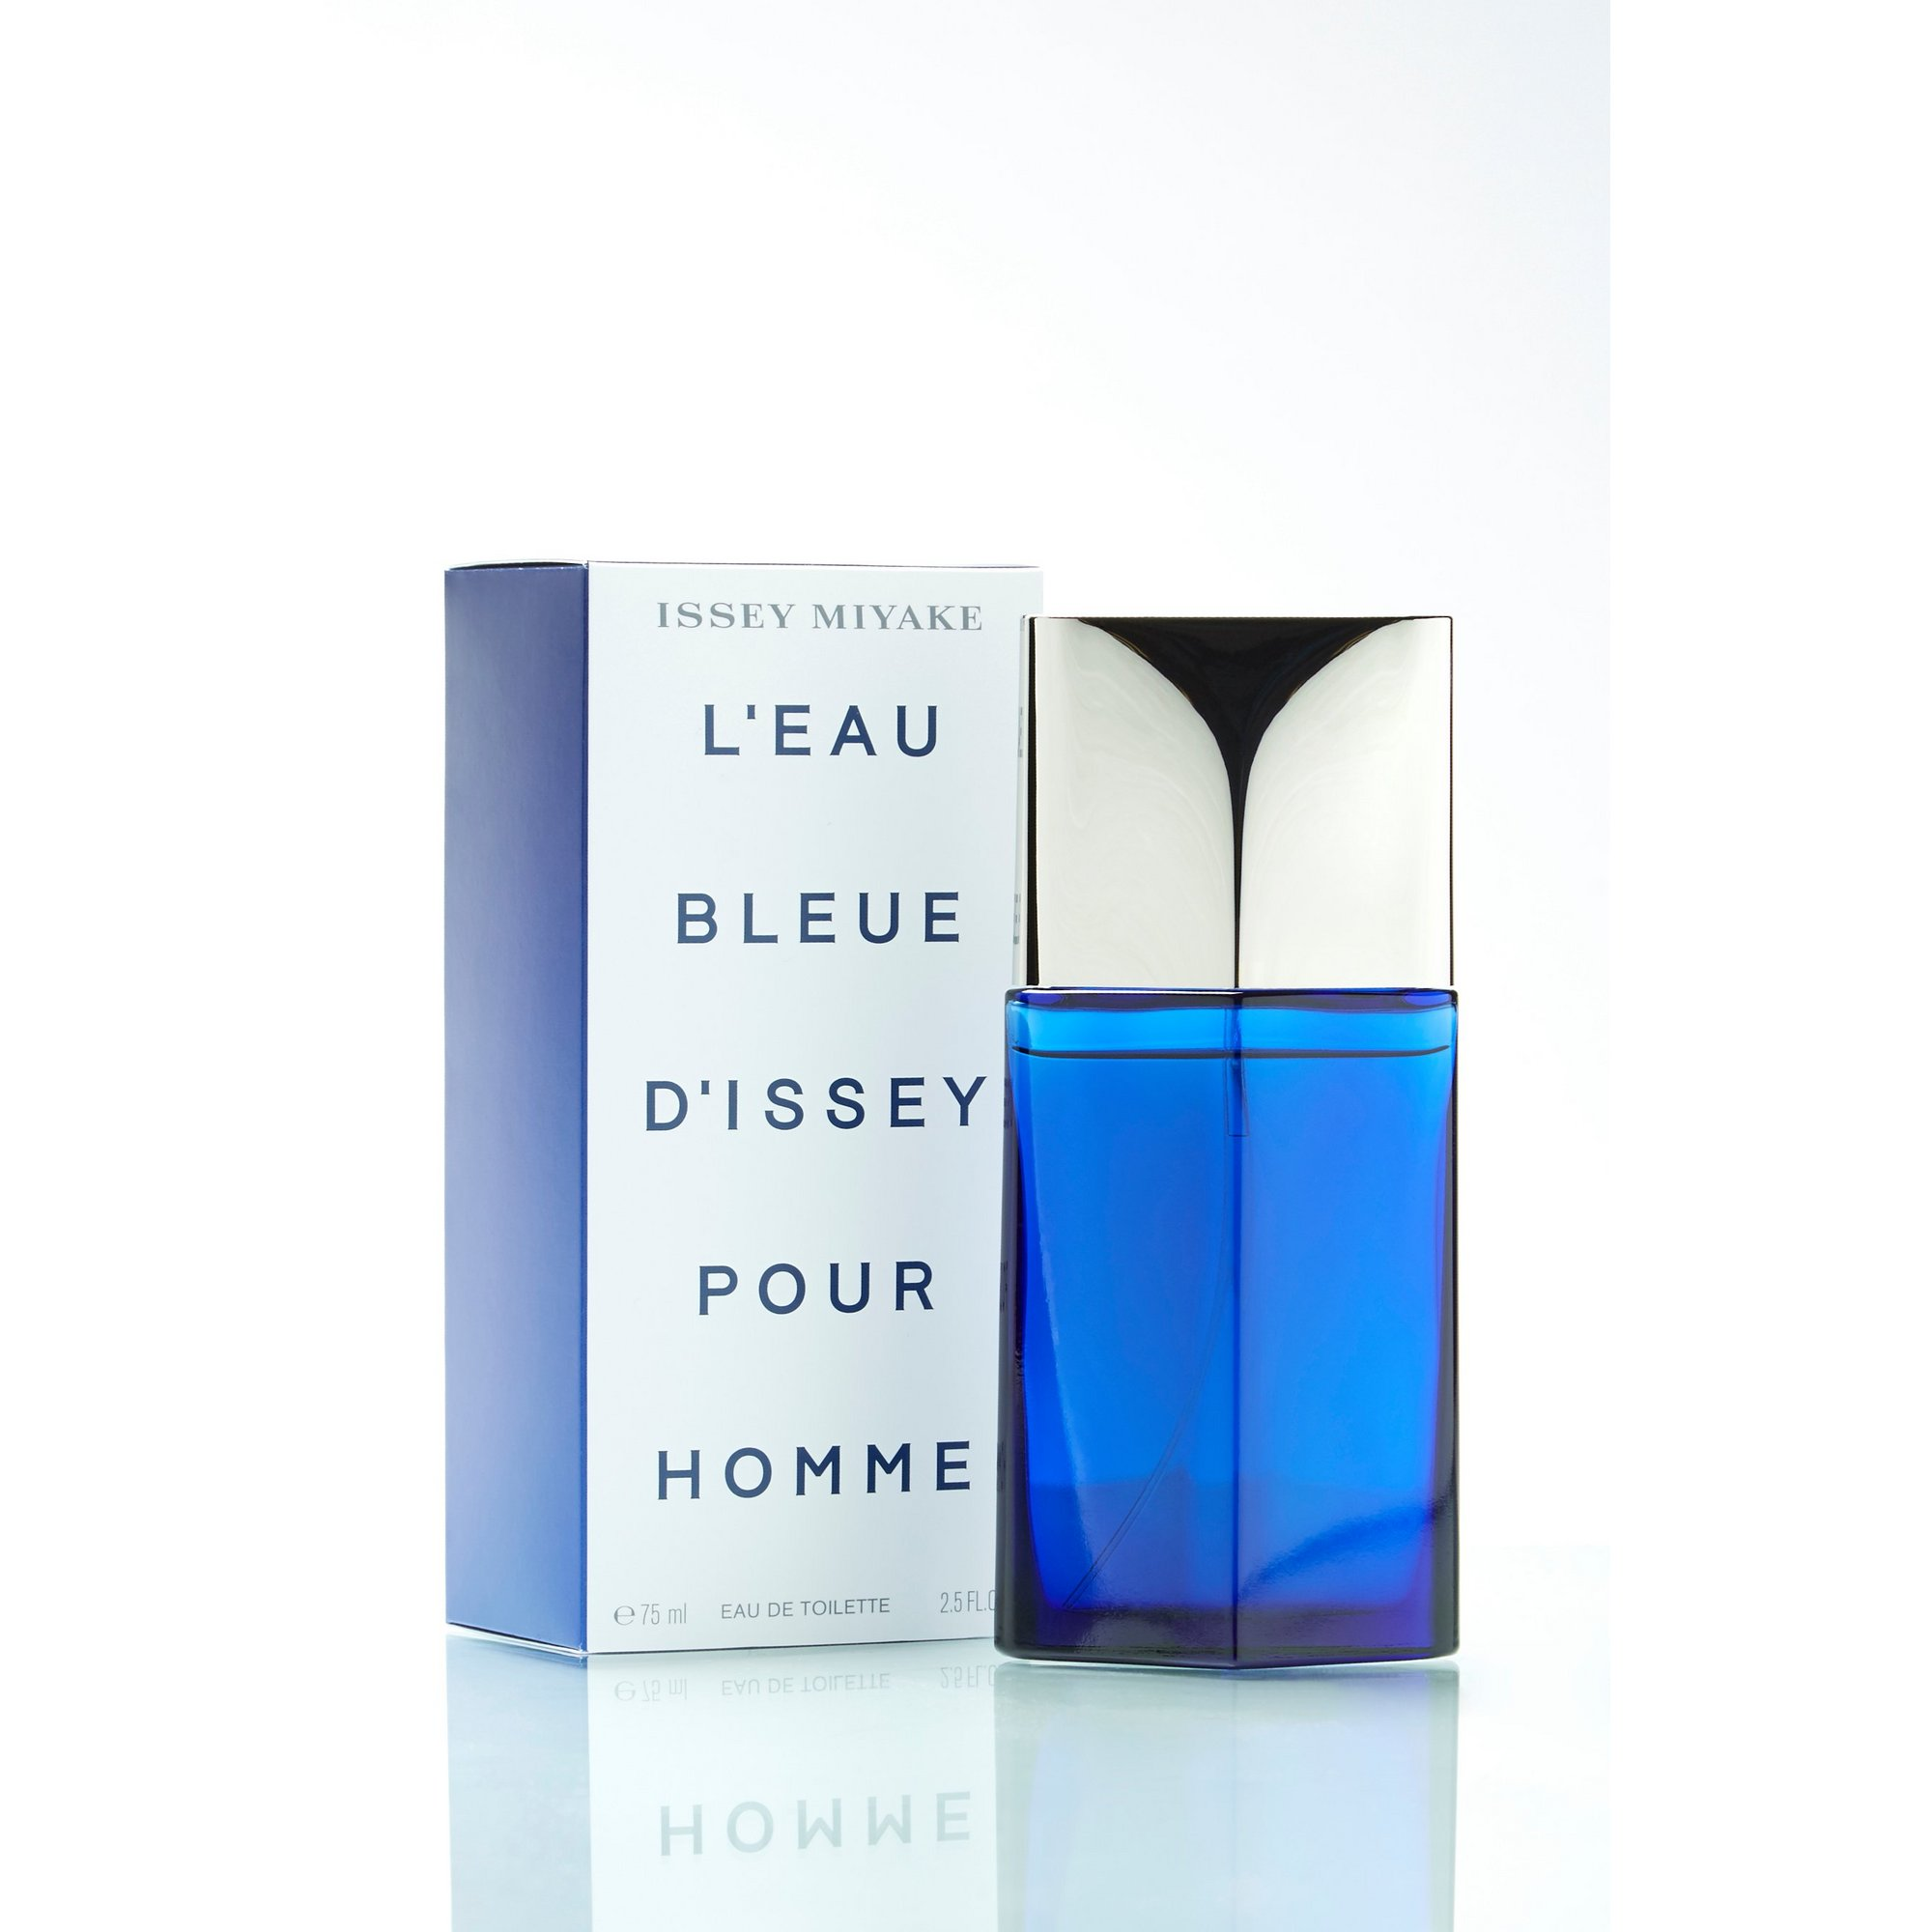 Image of Issey Miyake Bleue Pour Homme 75ml EDT